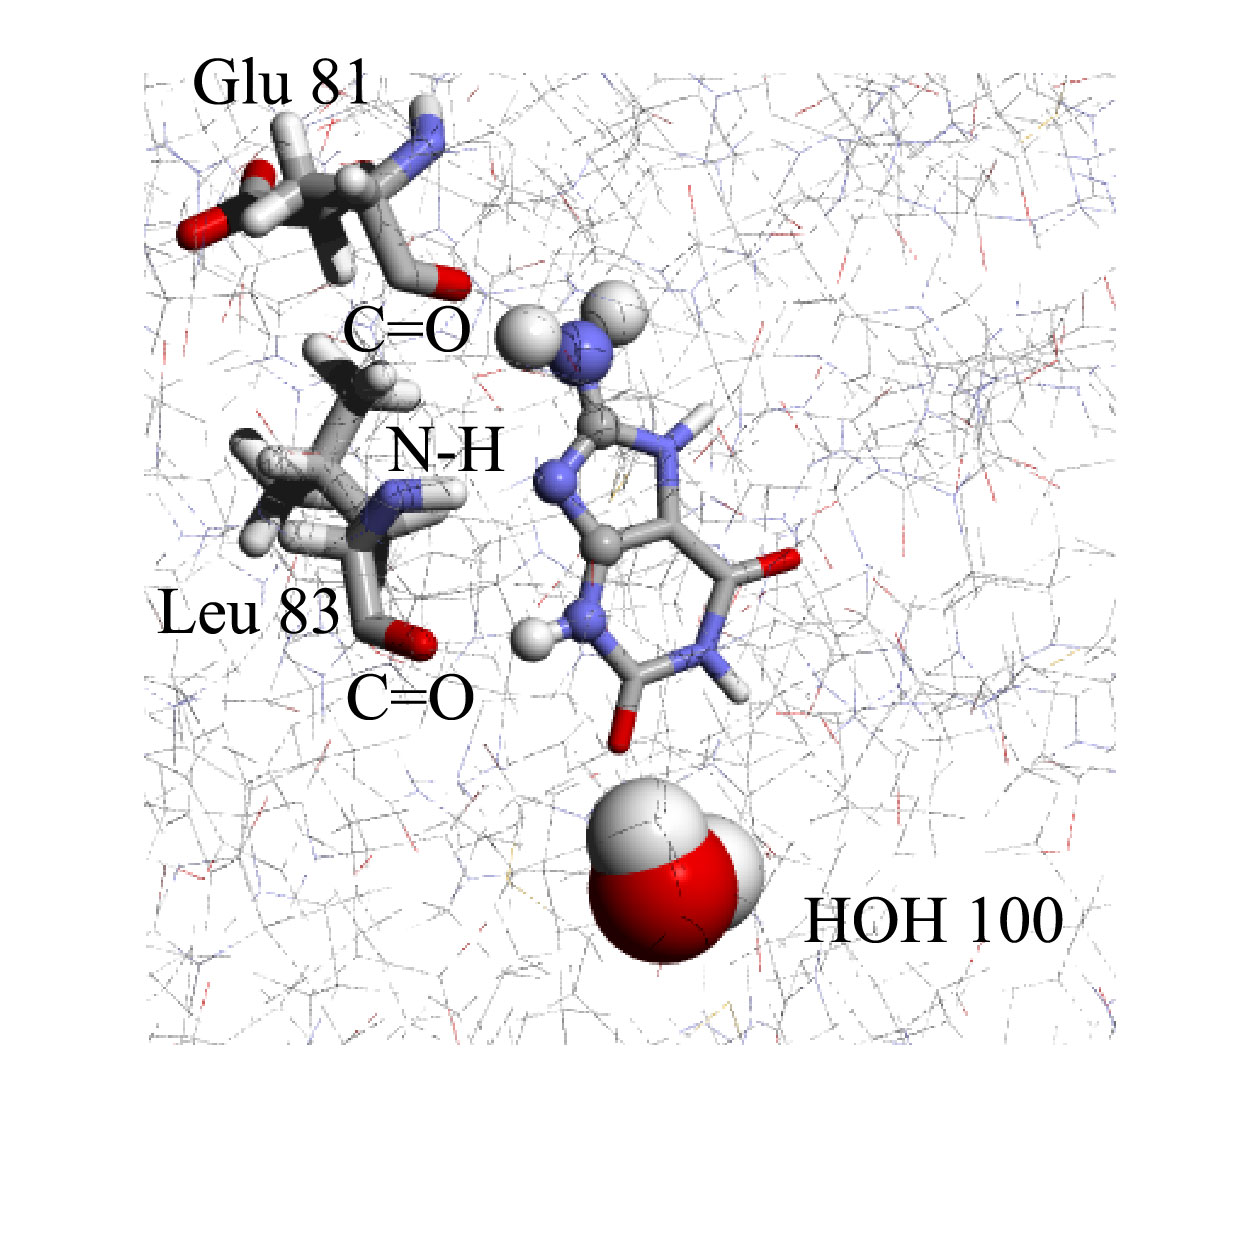 A.T. Garcia-Sosa, R.L. Mancera, The Effect of a Tightly-Bound Water Molecule on Scaffold Diversity in the Computer-Aided de novo Ligand Design of CDK2 Inhibitors, Journal of Molecular Modeling, J. Mol. Model. 2006, Vol. 12, Issue 4, 422-431 CDK2 water drug design de novo discovery ligand Abstract: We have determined the effects that tightly bound water molecules have on the de novo design of cyclin-dependent kinase-2 (CDK2) ligands.  In particular, we have analyzed the impact of a specific structural water molecule on the chemical diversity and binding mode of ligands generated through a de novo structure-based ligand generation method in the binding site of CDK2.  The tightly bound water molecule modifies the size and shape of the binding site and we have found that it also imposed constraints on the observed binding modes of the generated ligands.  This in turn had the indirect effect of reducing the chemical diversity of the underlying molecular scaffolds that were able to bind to the enzyme satisfactorily.